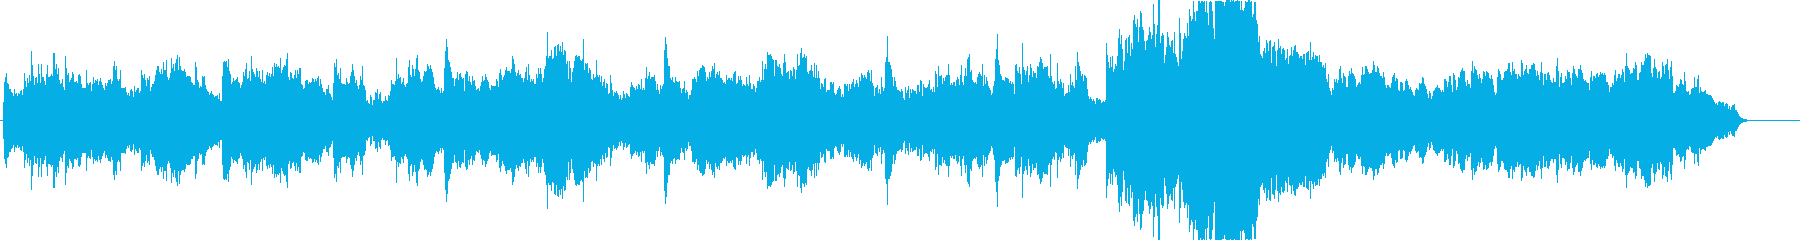 Japanese-style arrangement of classical music's reproduced waveform